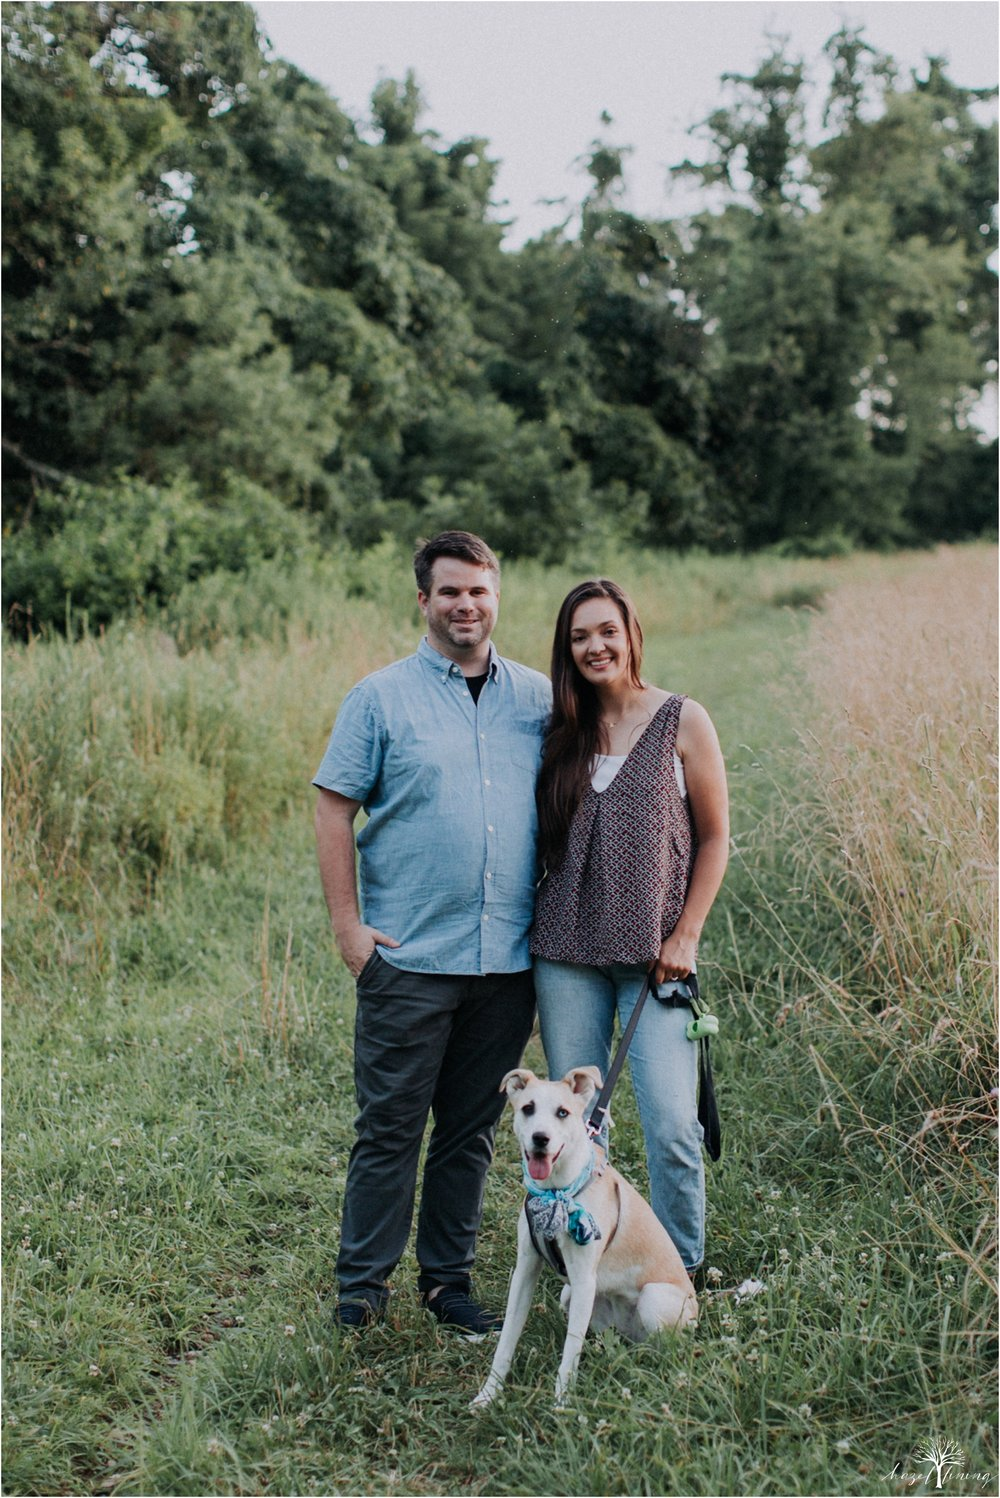 kelsey-delaney-kevin-jordan-tyler-state-park-newtown-pennsylvania-golden-hour-sunset-engagement-session-hazel-lining-travel-wedding-elopement-photography_0118.jpg